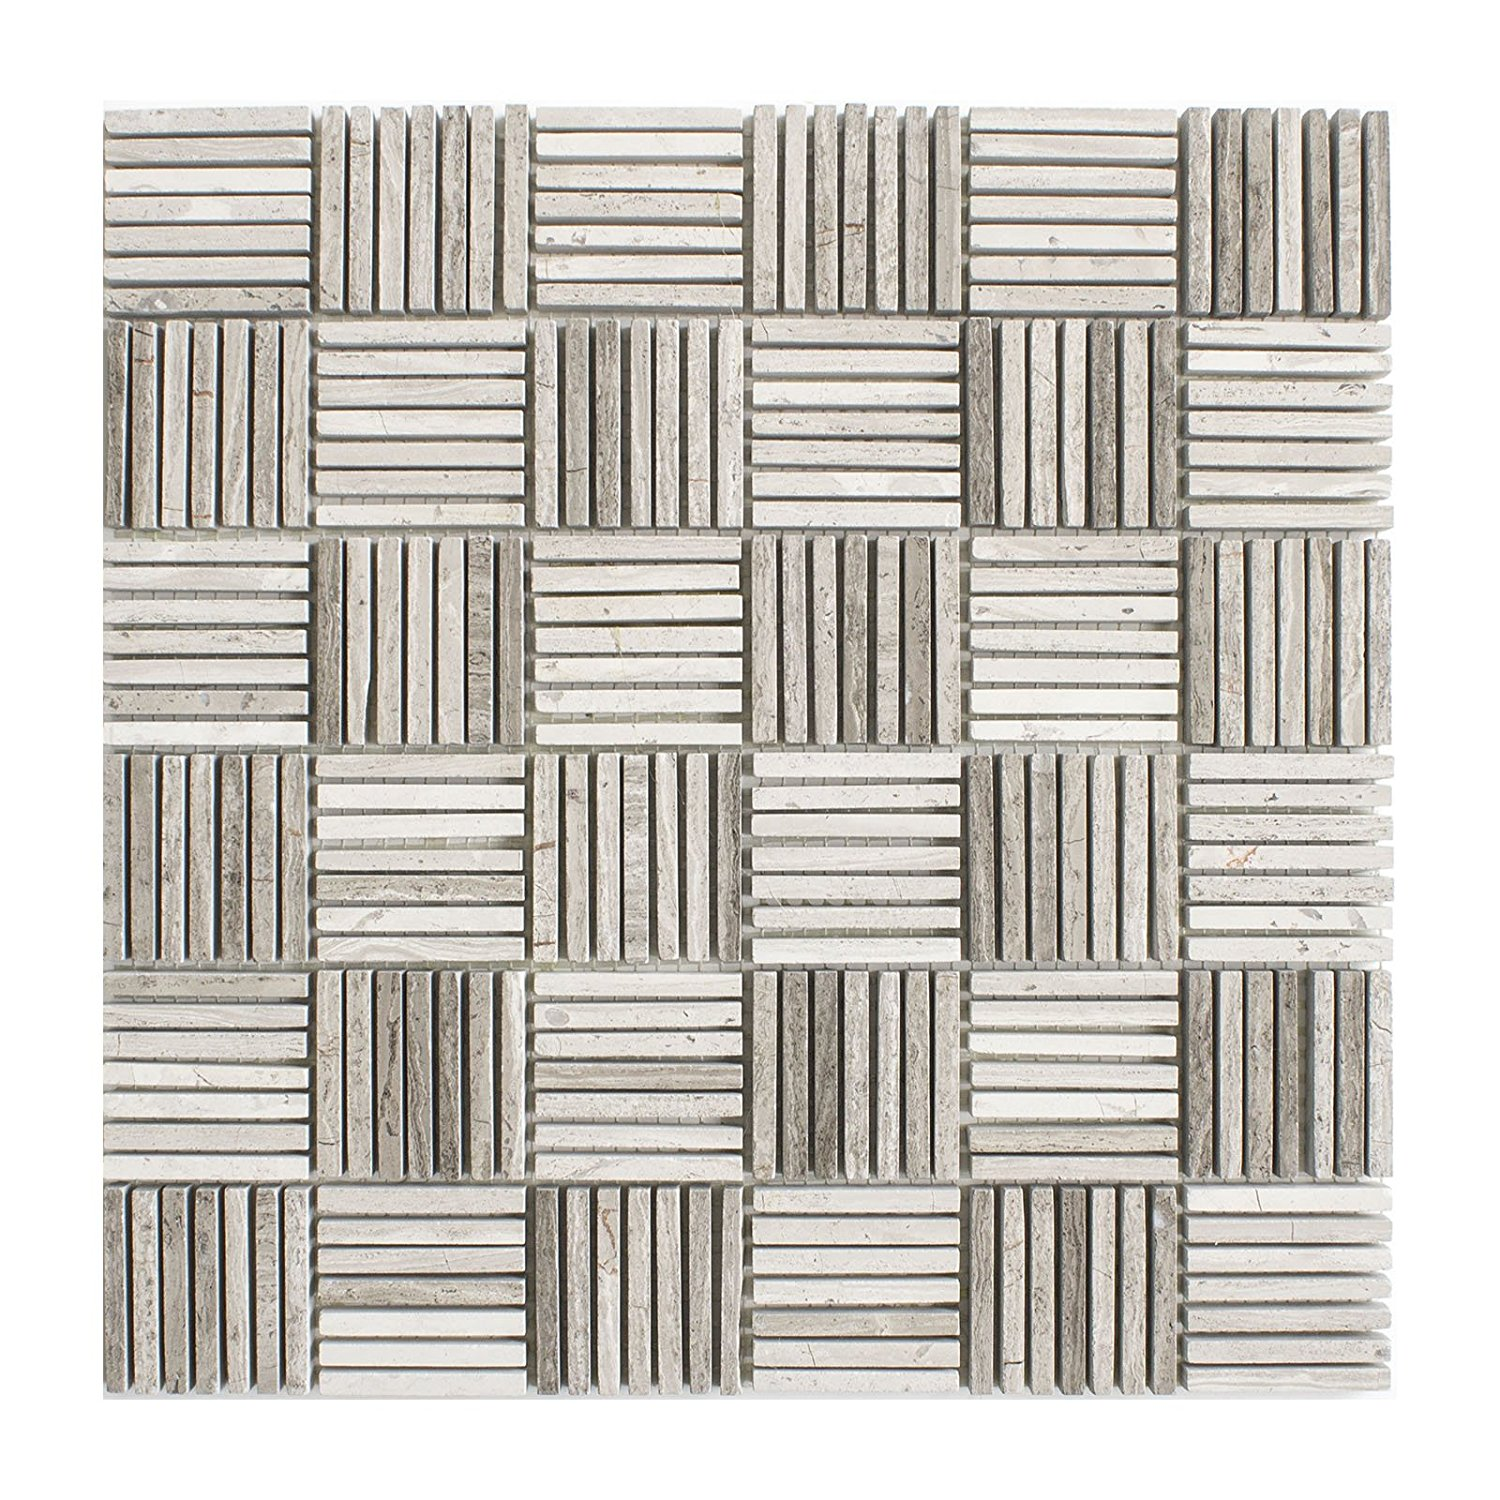 """Marble Mosaic Tile, """"Match Stick Collection"""", MM 5202 - White Oak, 1/4""""X2"""" Strips, 12""""X12"""", Polished (Sample (4""""X4""""))"""